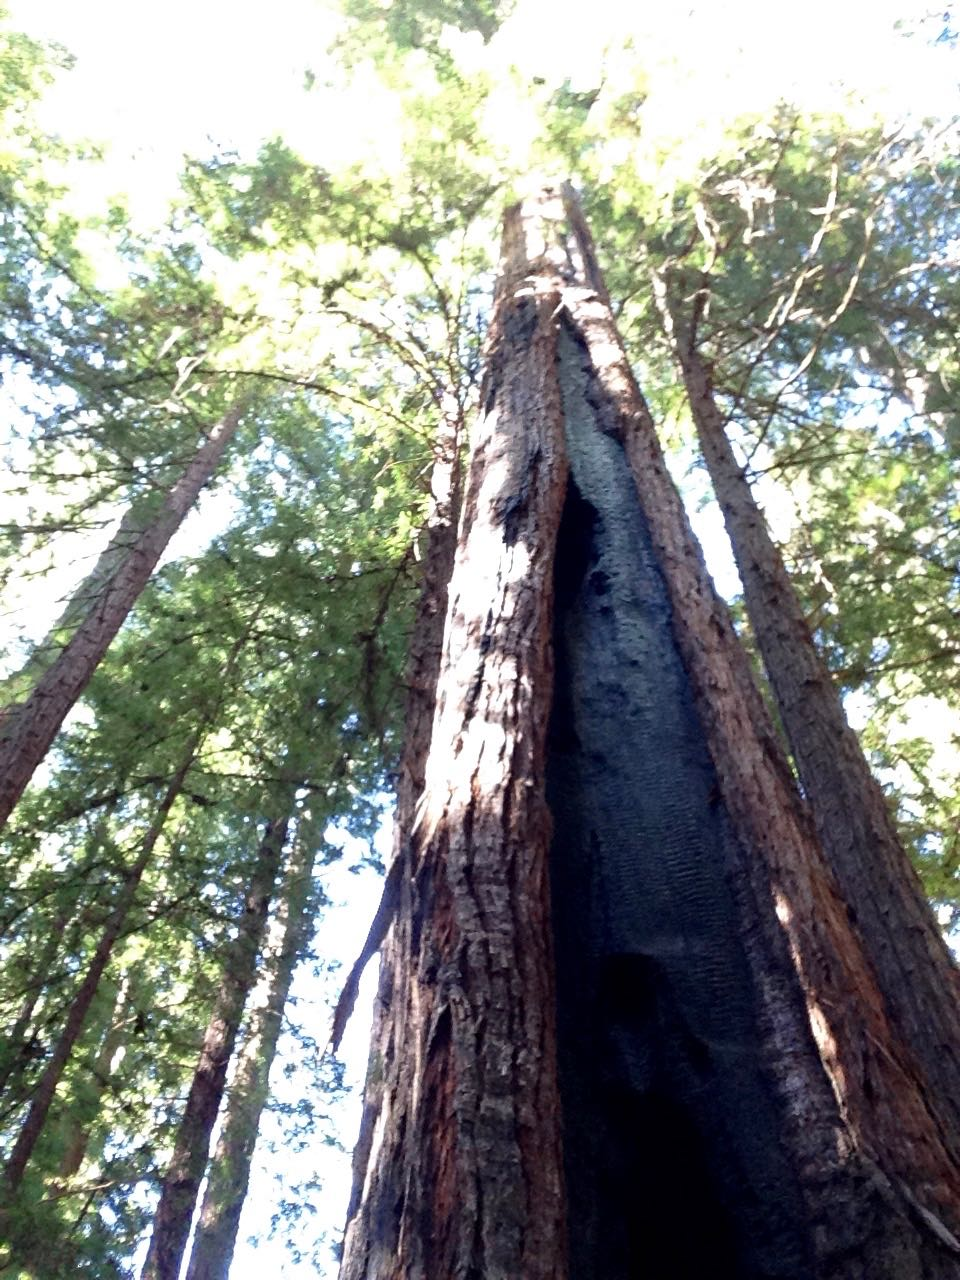 Redwoods 2017 10 01 16 Of 244